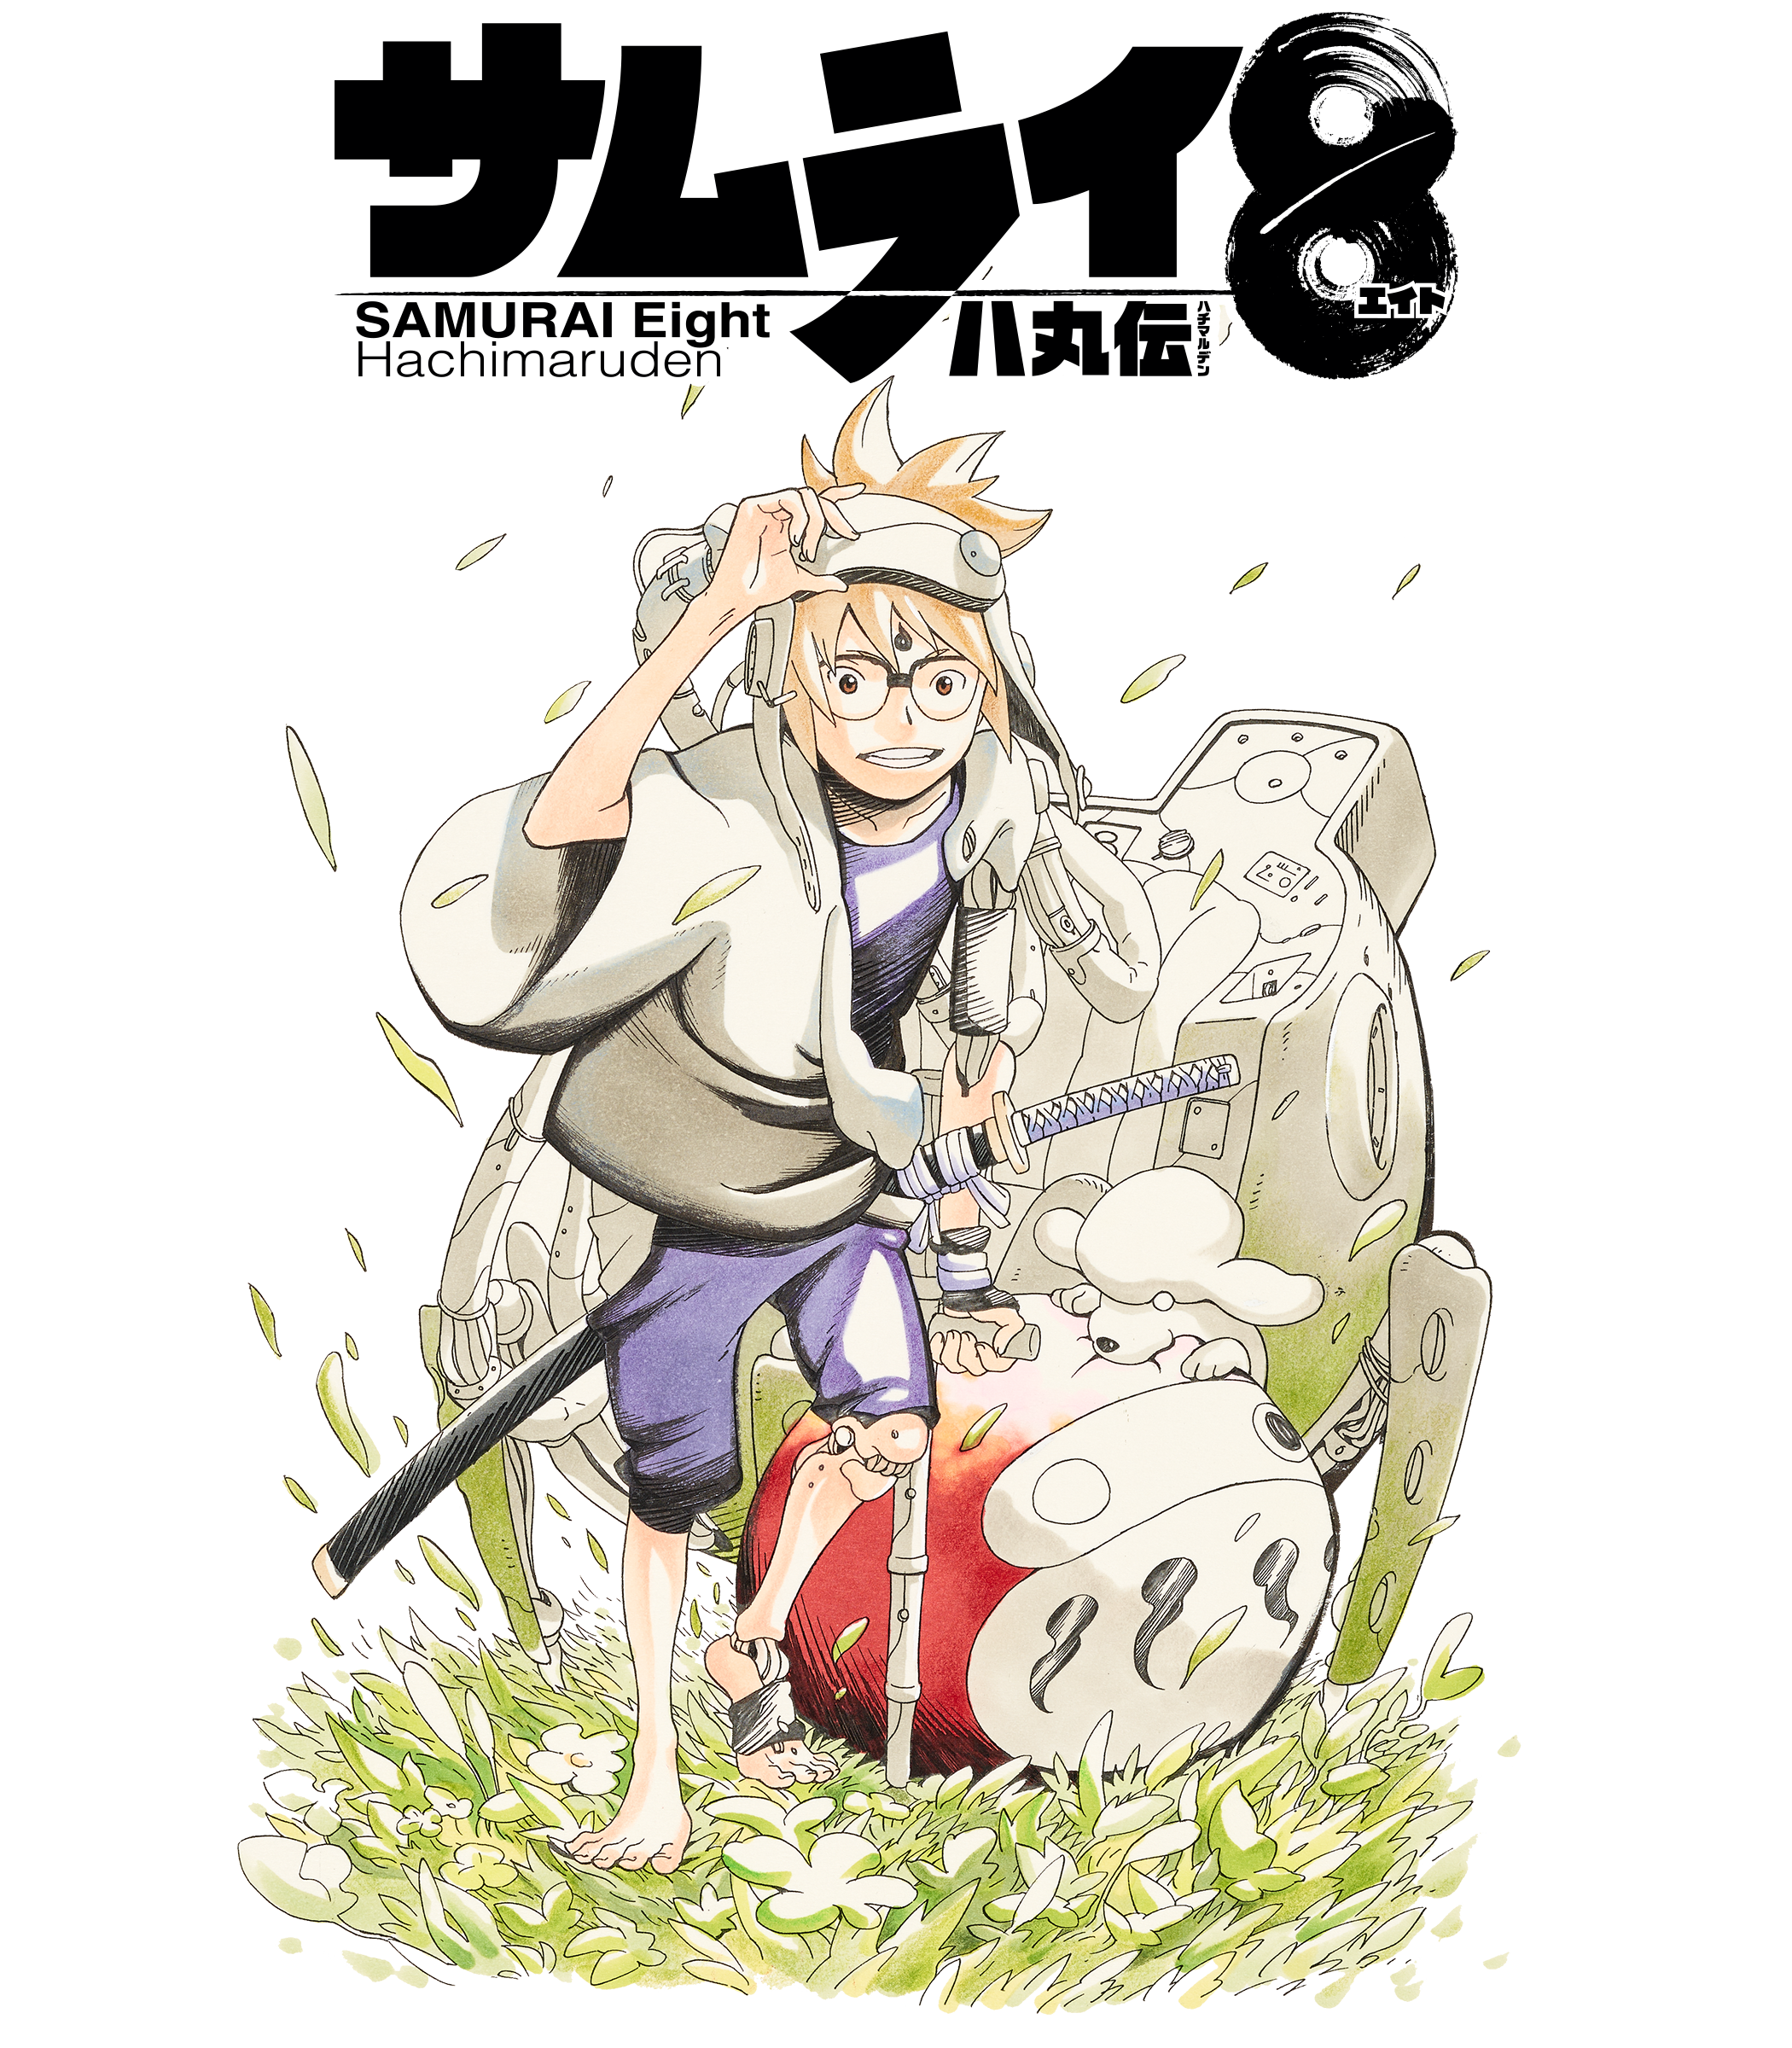 Samurai 8: The Tale of Hachimaru